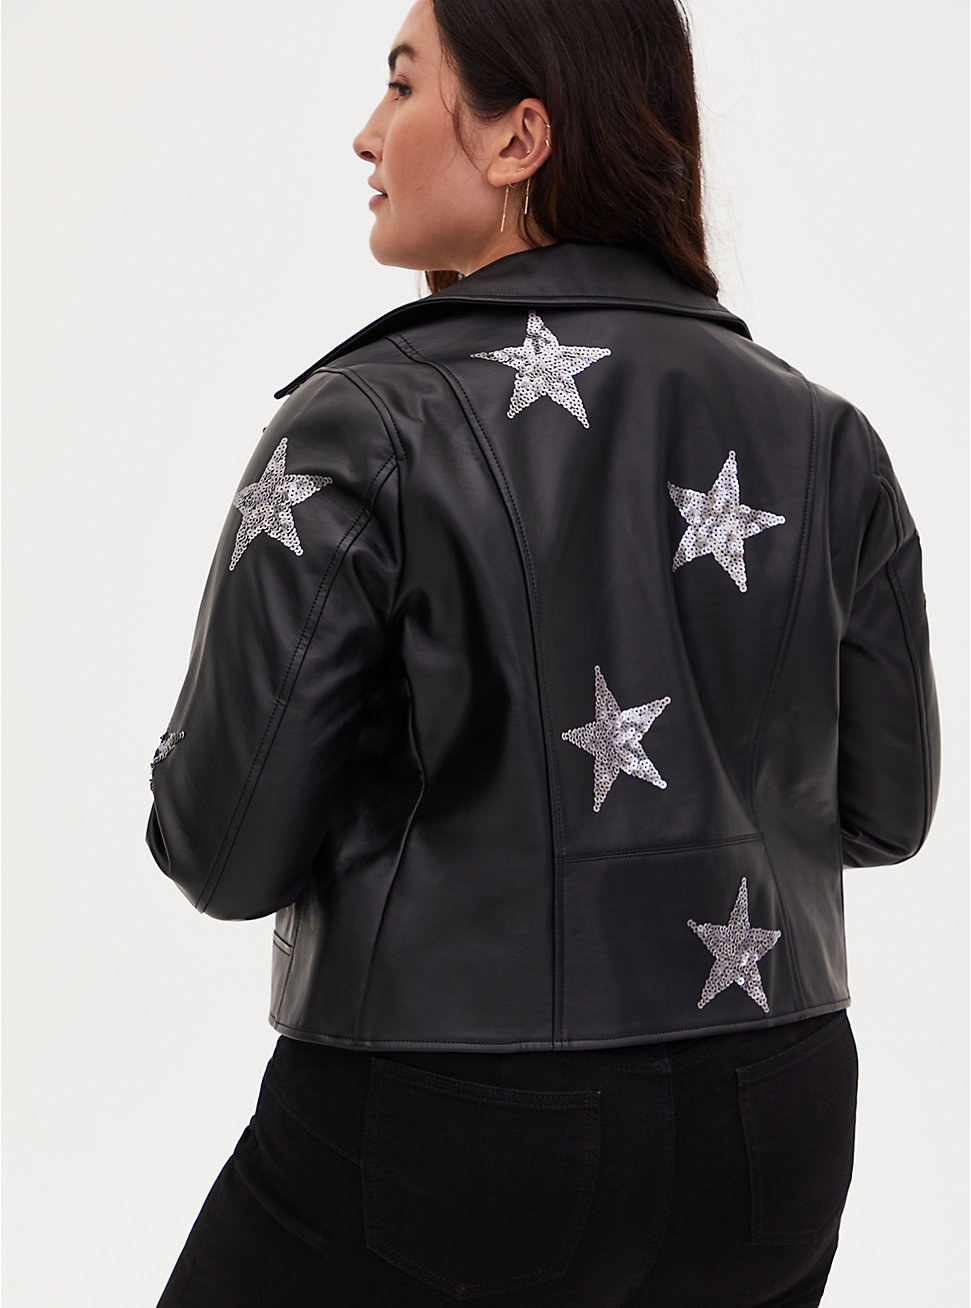 model wearing the black jacket with stars